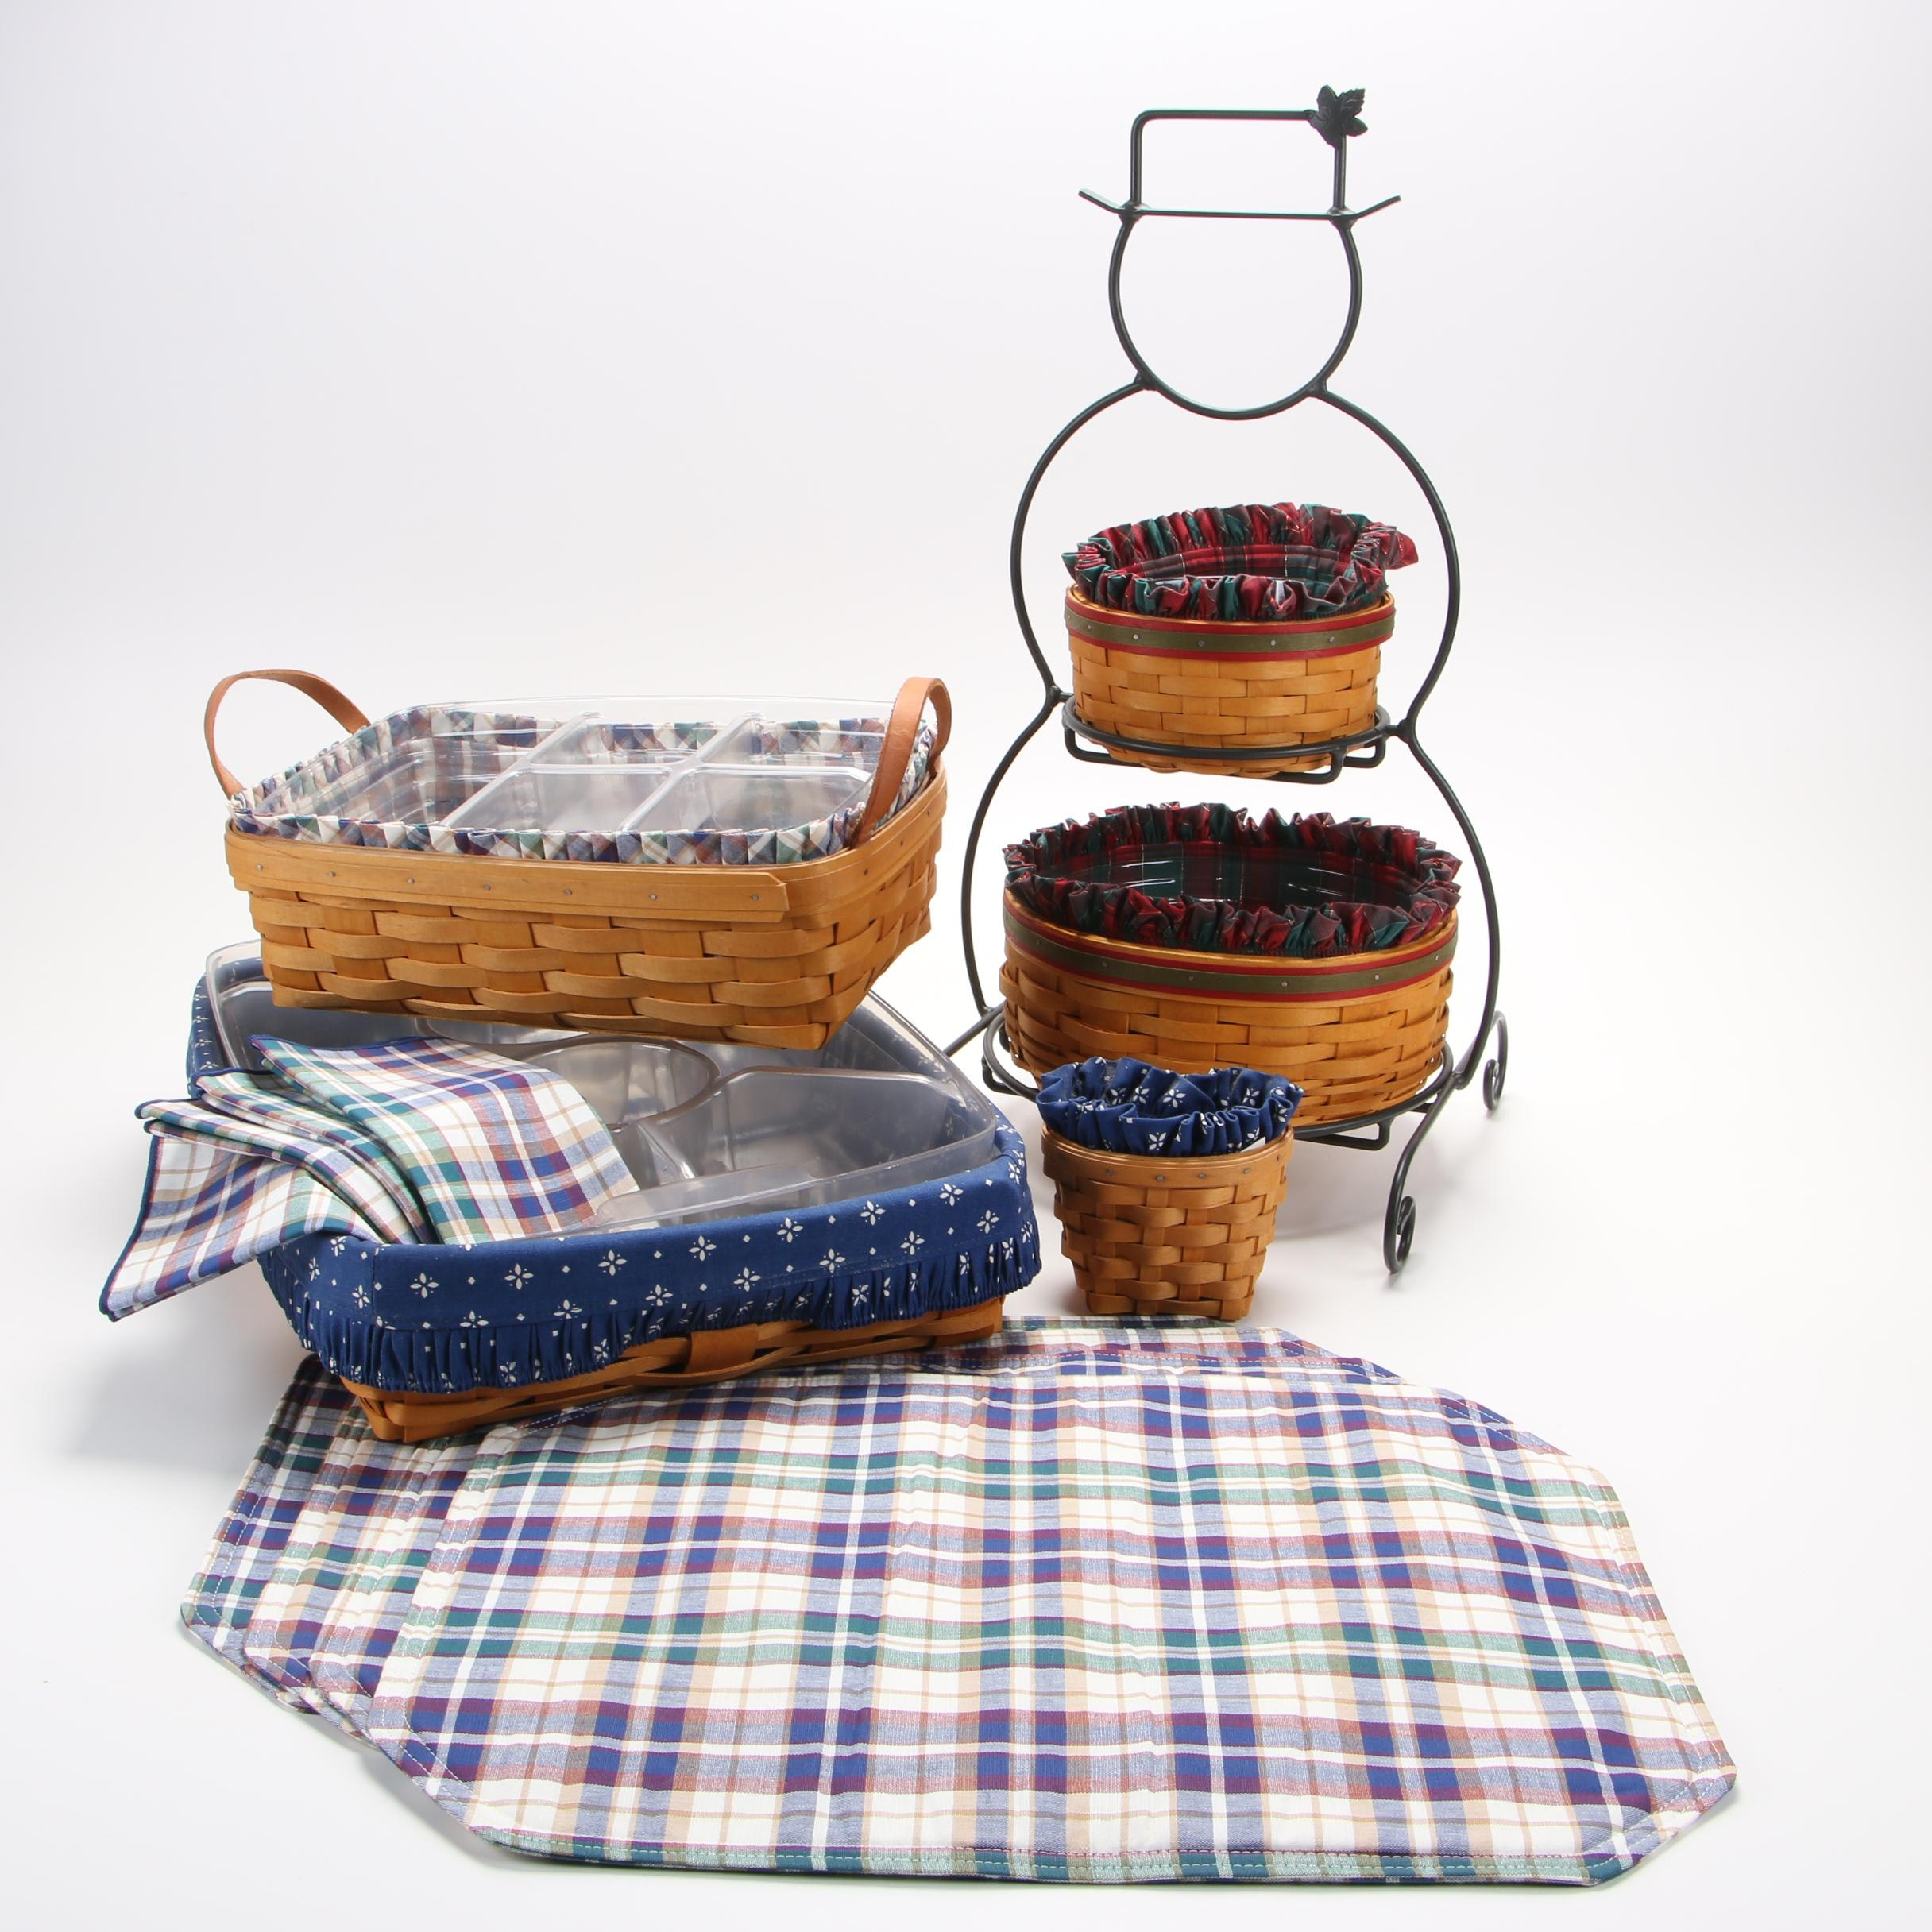 Longaberger Baskets with Tiered Snowman Stand